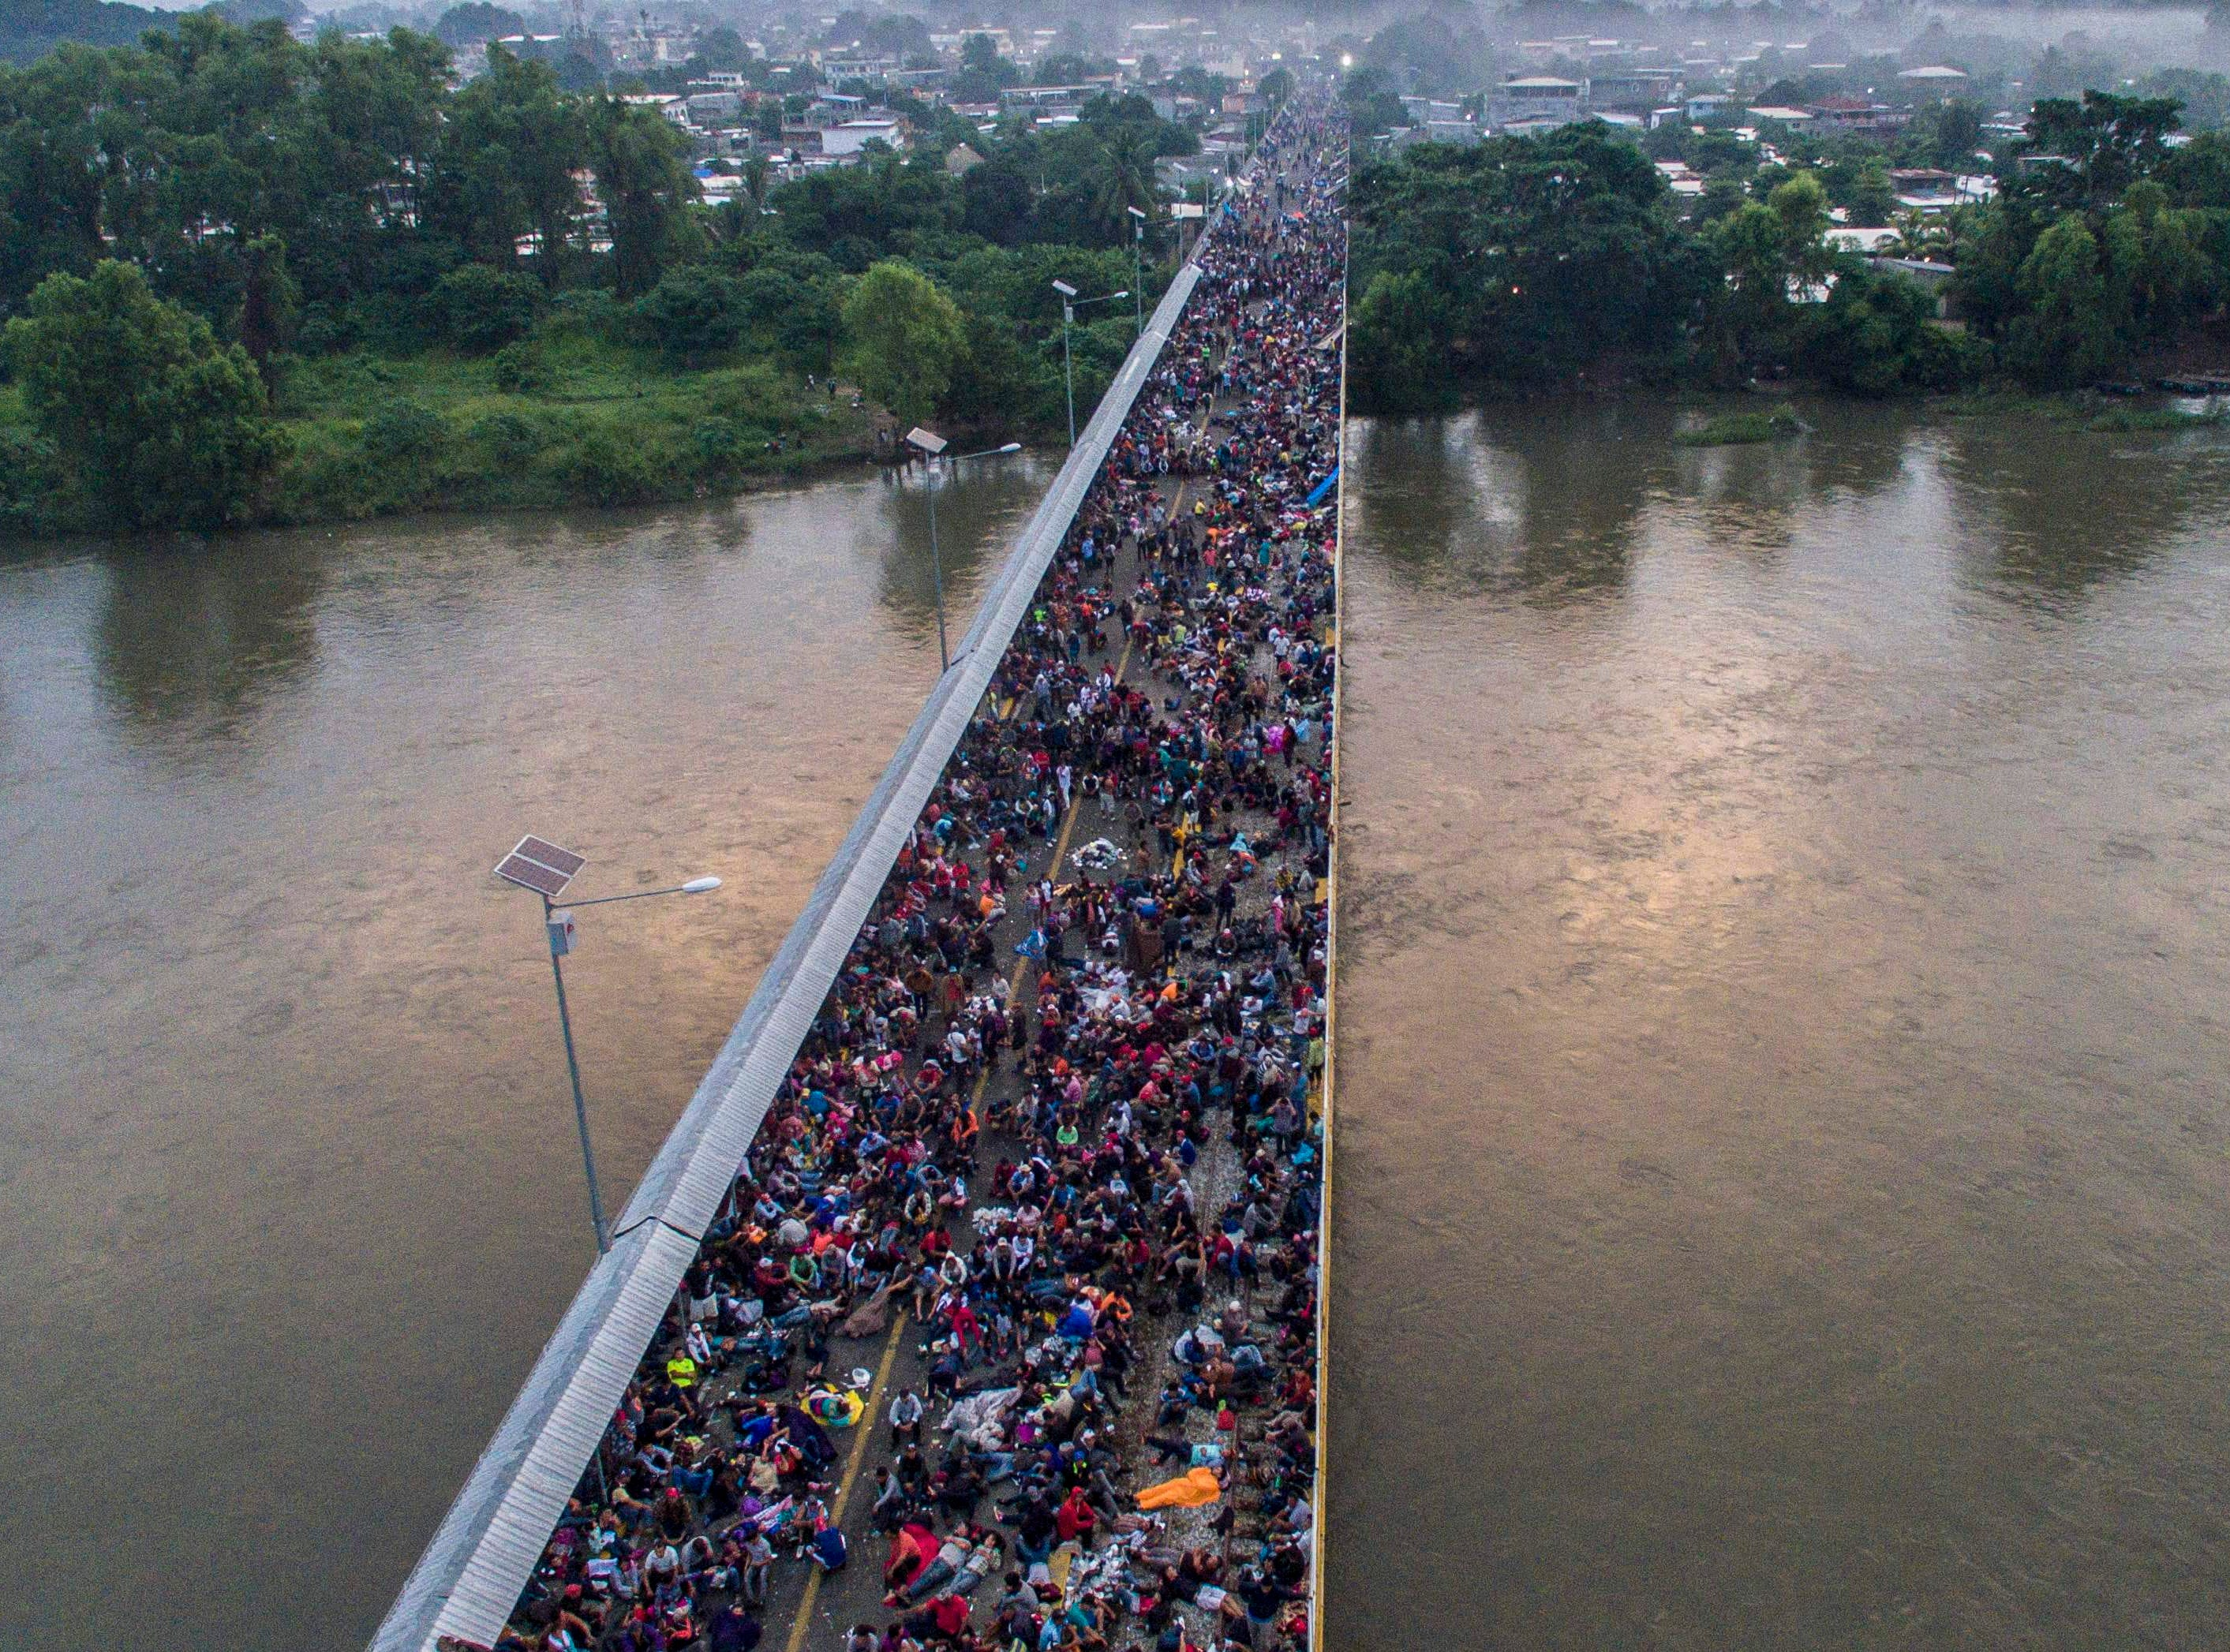 Aerial view of a Honduran migrant caravan heading to the US, on the Guatemala-Mexico international border bridge in Ciudad Hidalgo, Chiapas state, Mexico, on Oct. 20, 2018.